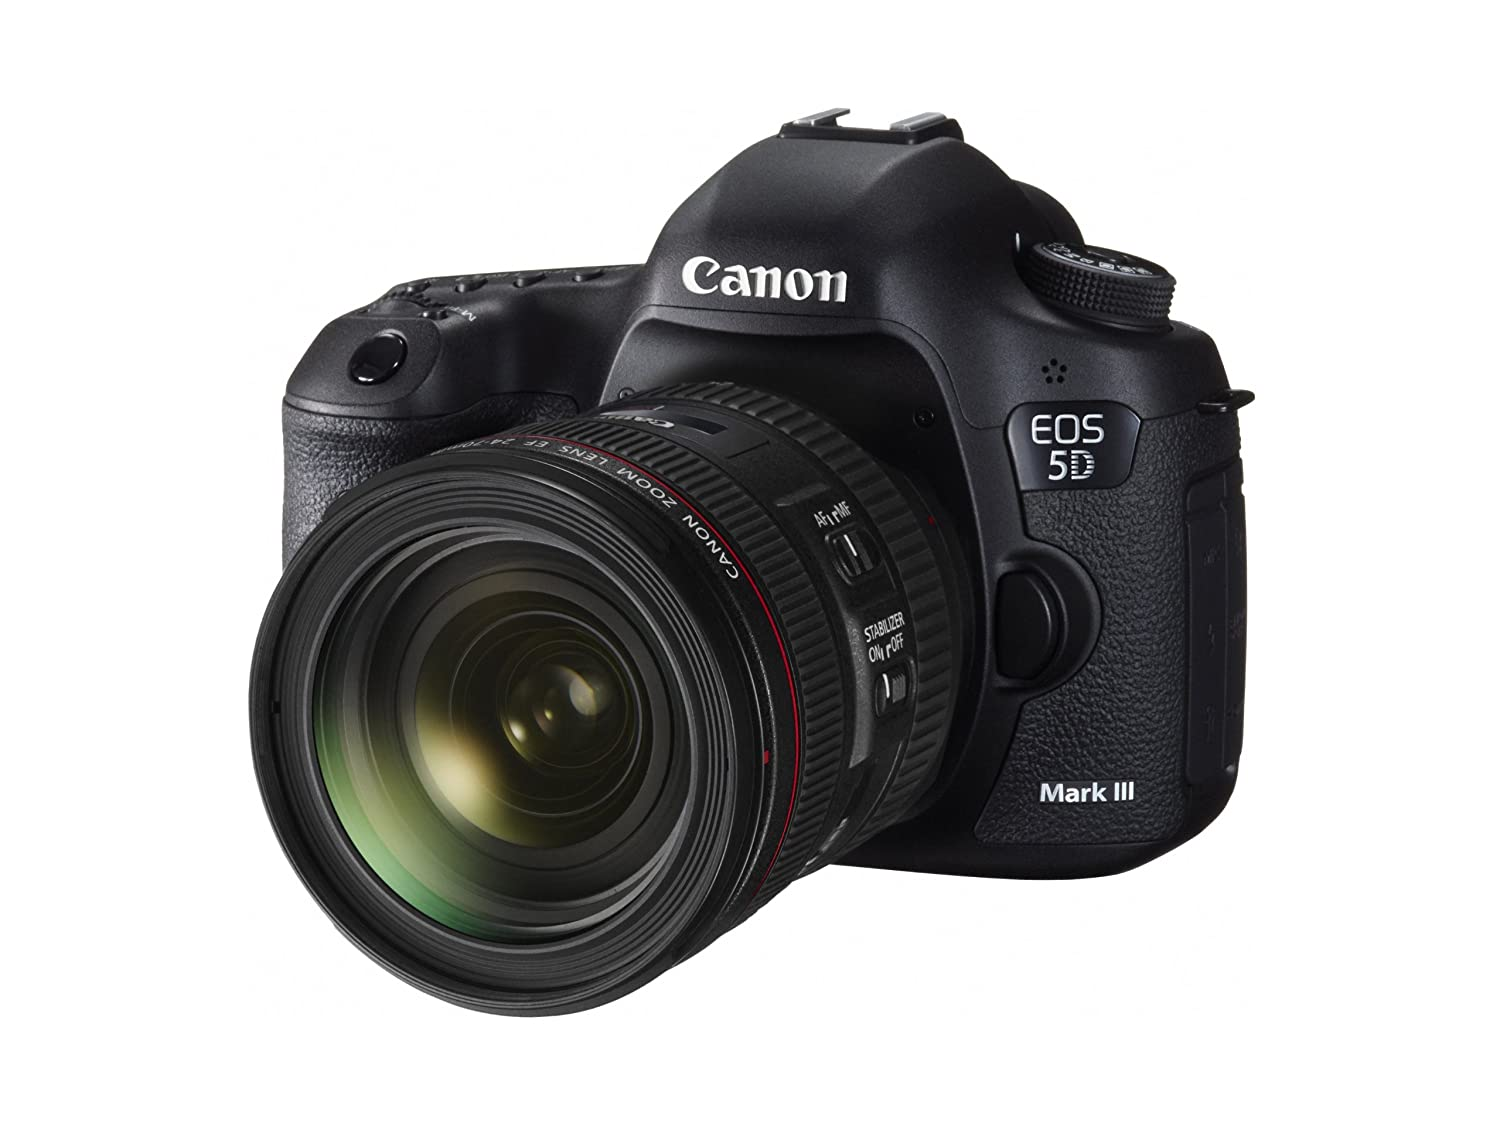 Canon EOS 5D Mark III with 24-70mm Lens